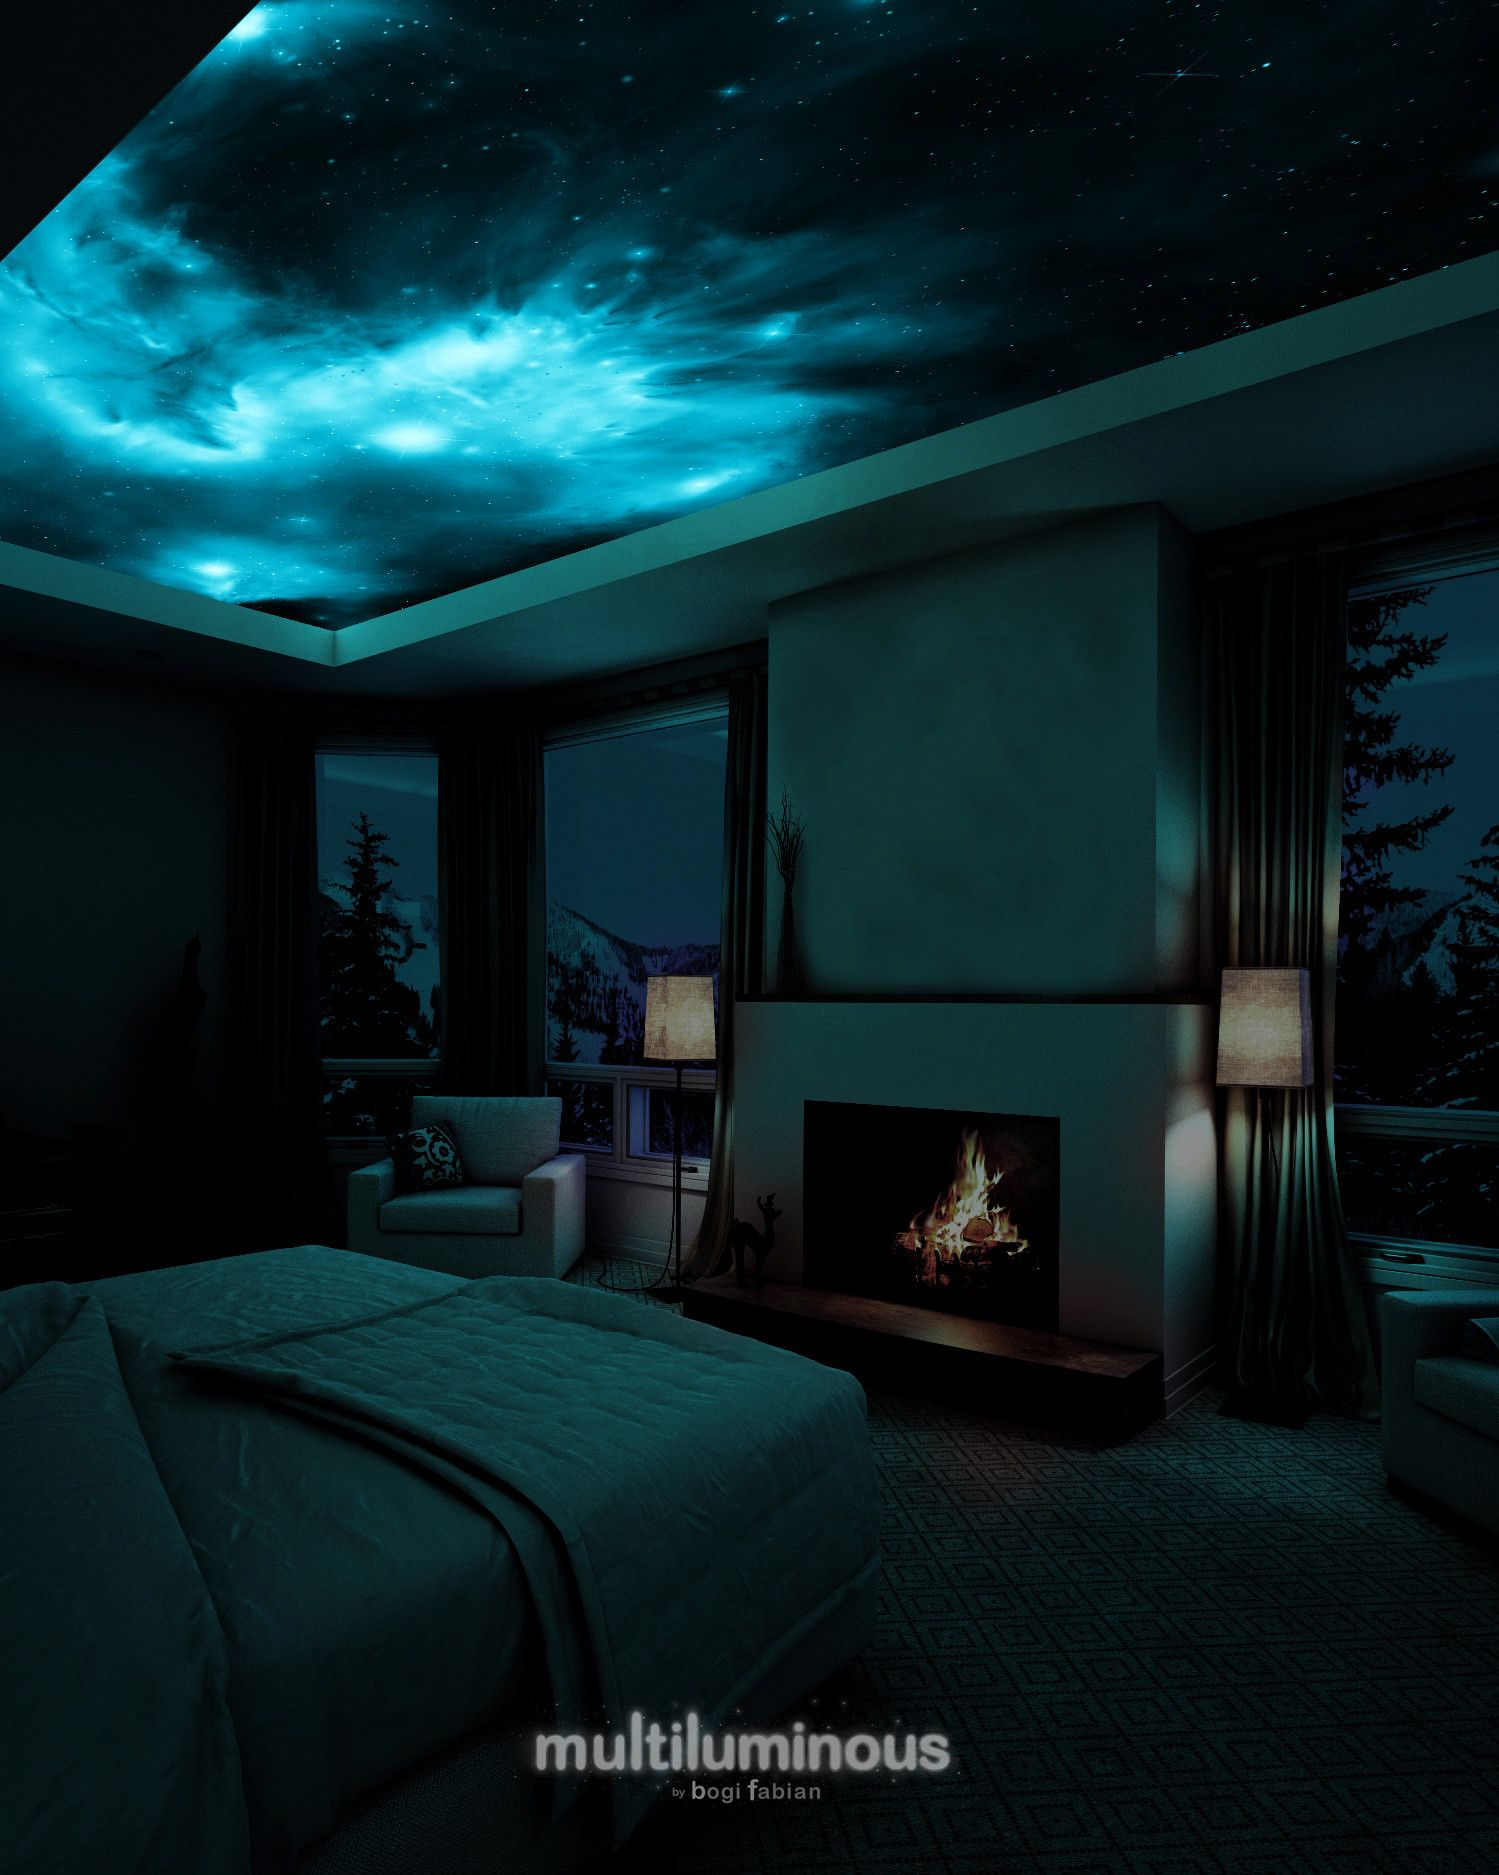 Bring Magic To Your Home With Glowing Galaxy Prints Martha Stewart These Intricate Canvas Murals Black Lights Bedroom Galaxy Bedroom Bedroom Ceiling Light